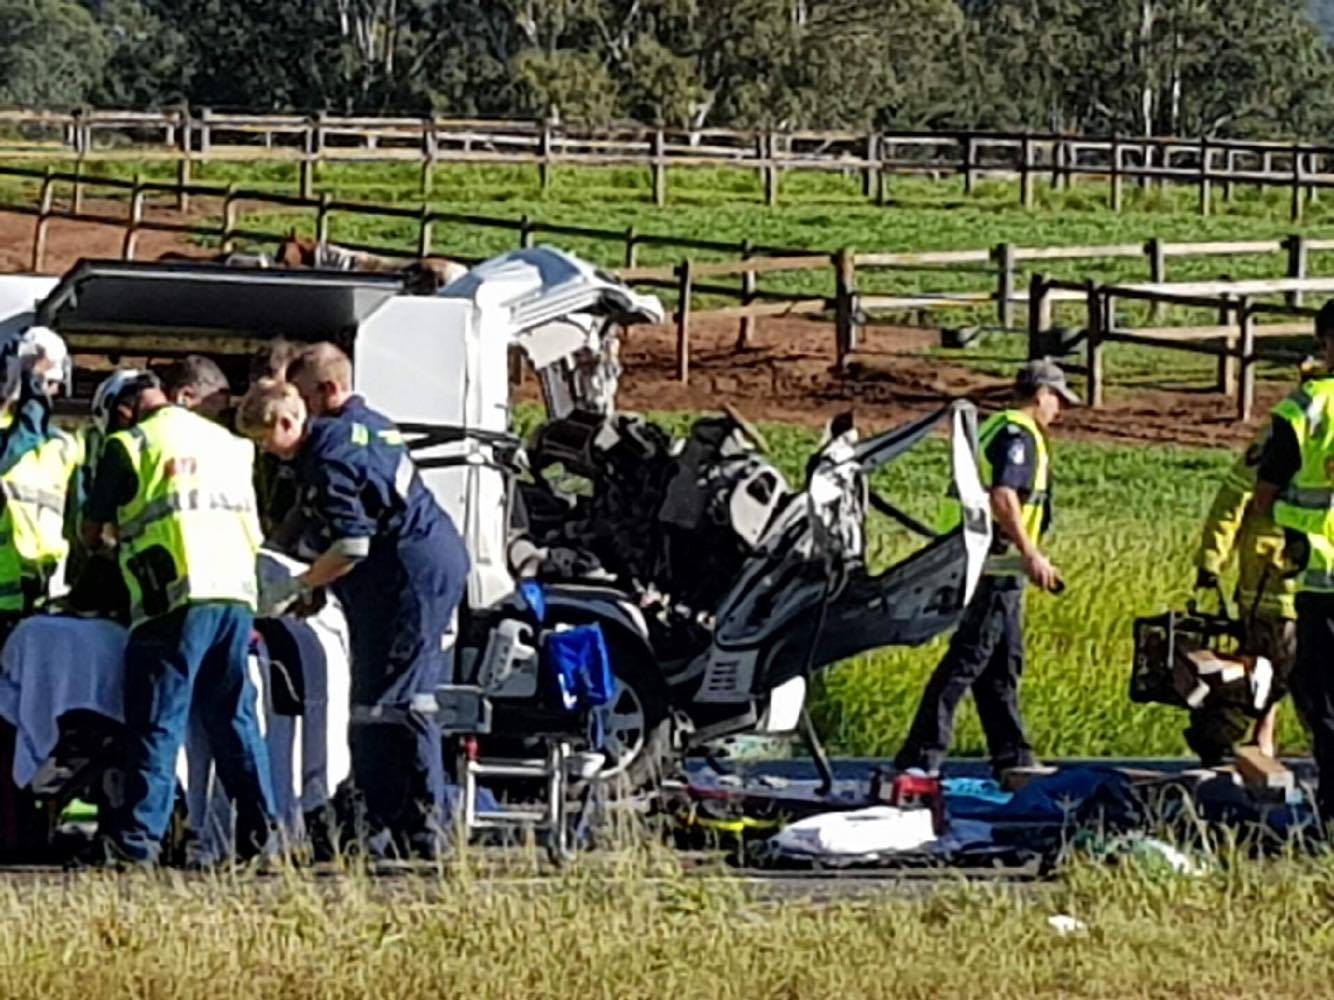 Emergency crews rush to free the woman pinned in her truck after this morning's horror crash.